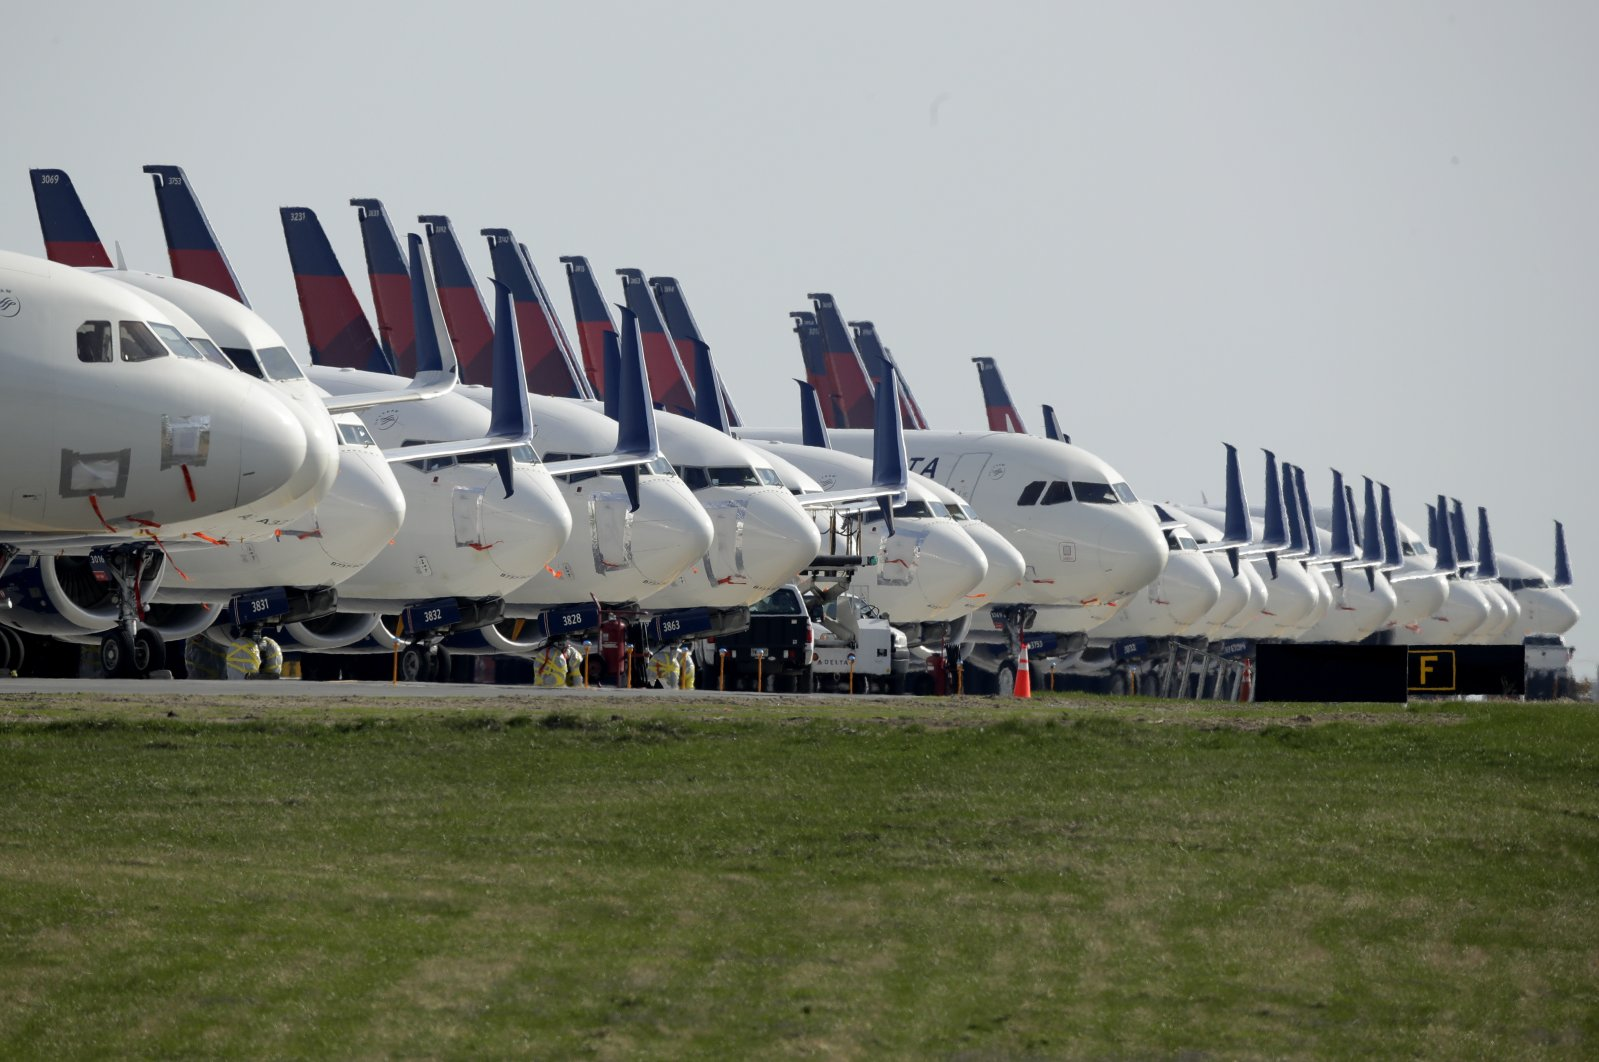 Several dozen mothballed Delta Air Lines jets are parked at Kansas City International Airport in Kansas City, Mo., April 1, 2020. (AP Photo)